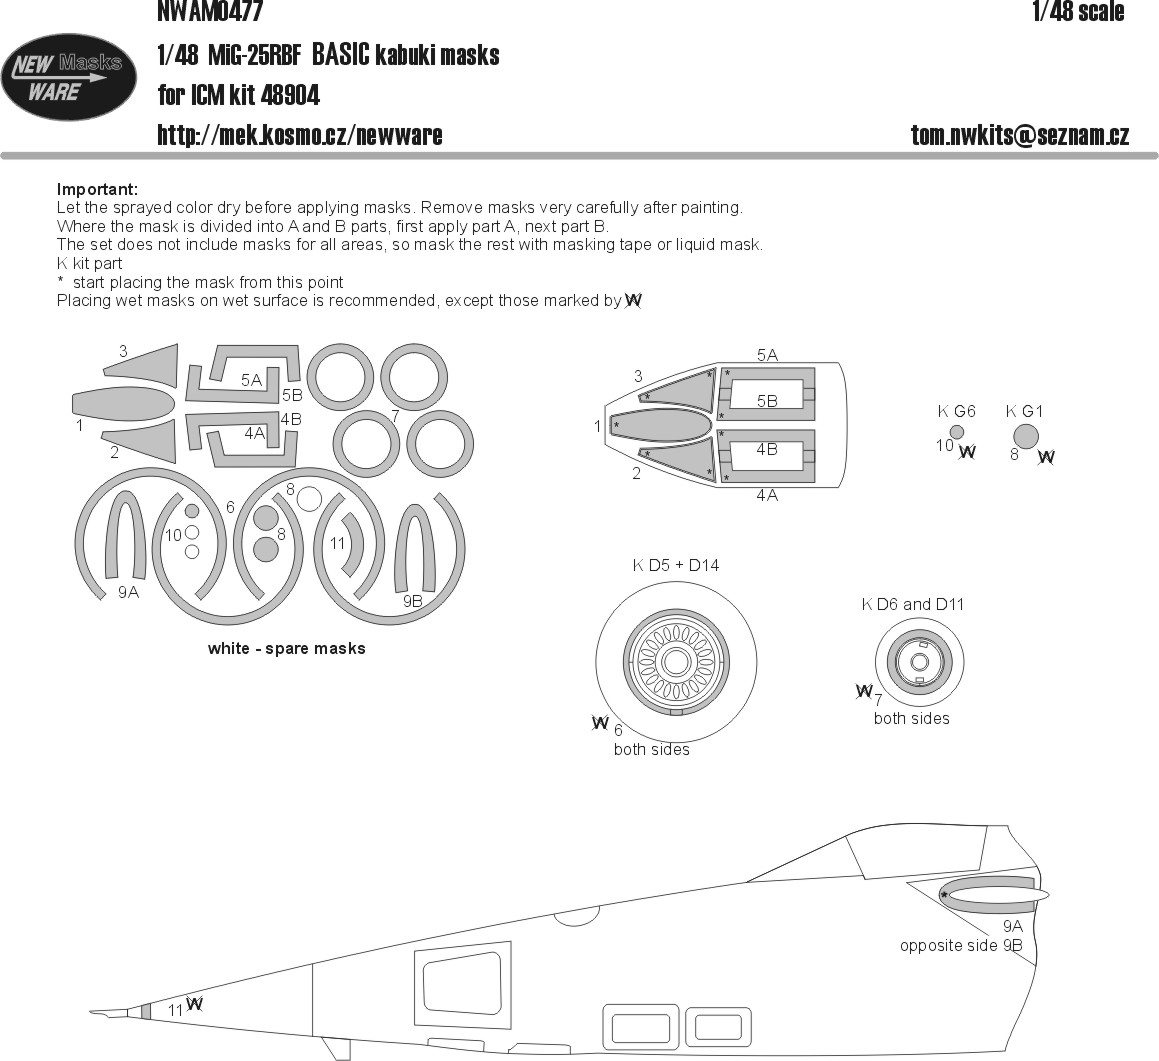 small resolution of aircraft canopy wheels camouflage details designed to be use with icm kits manufacturer new ware code number nwam0477 scale 1 48